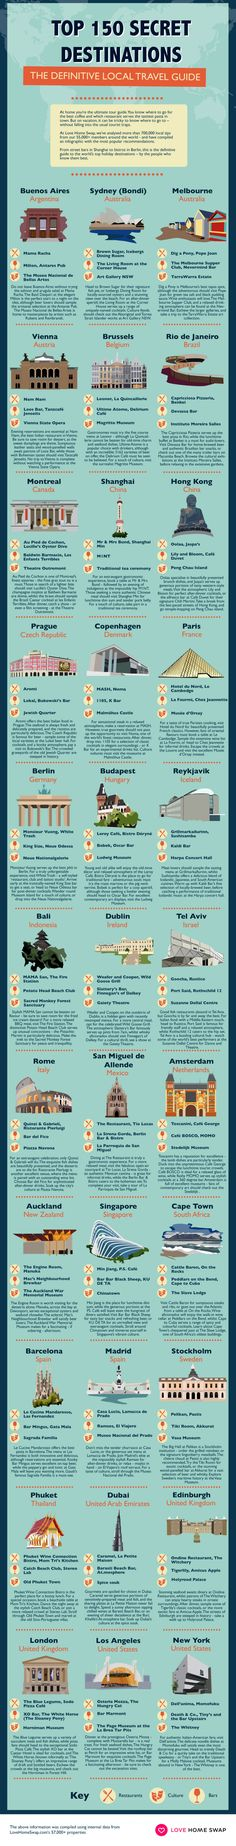 Top 150 Secret Destinations #infografía